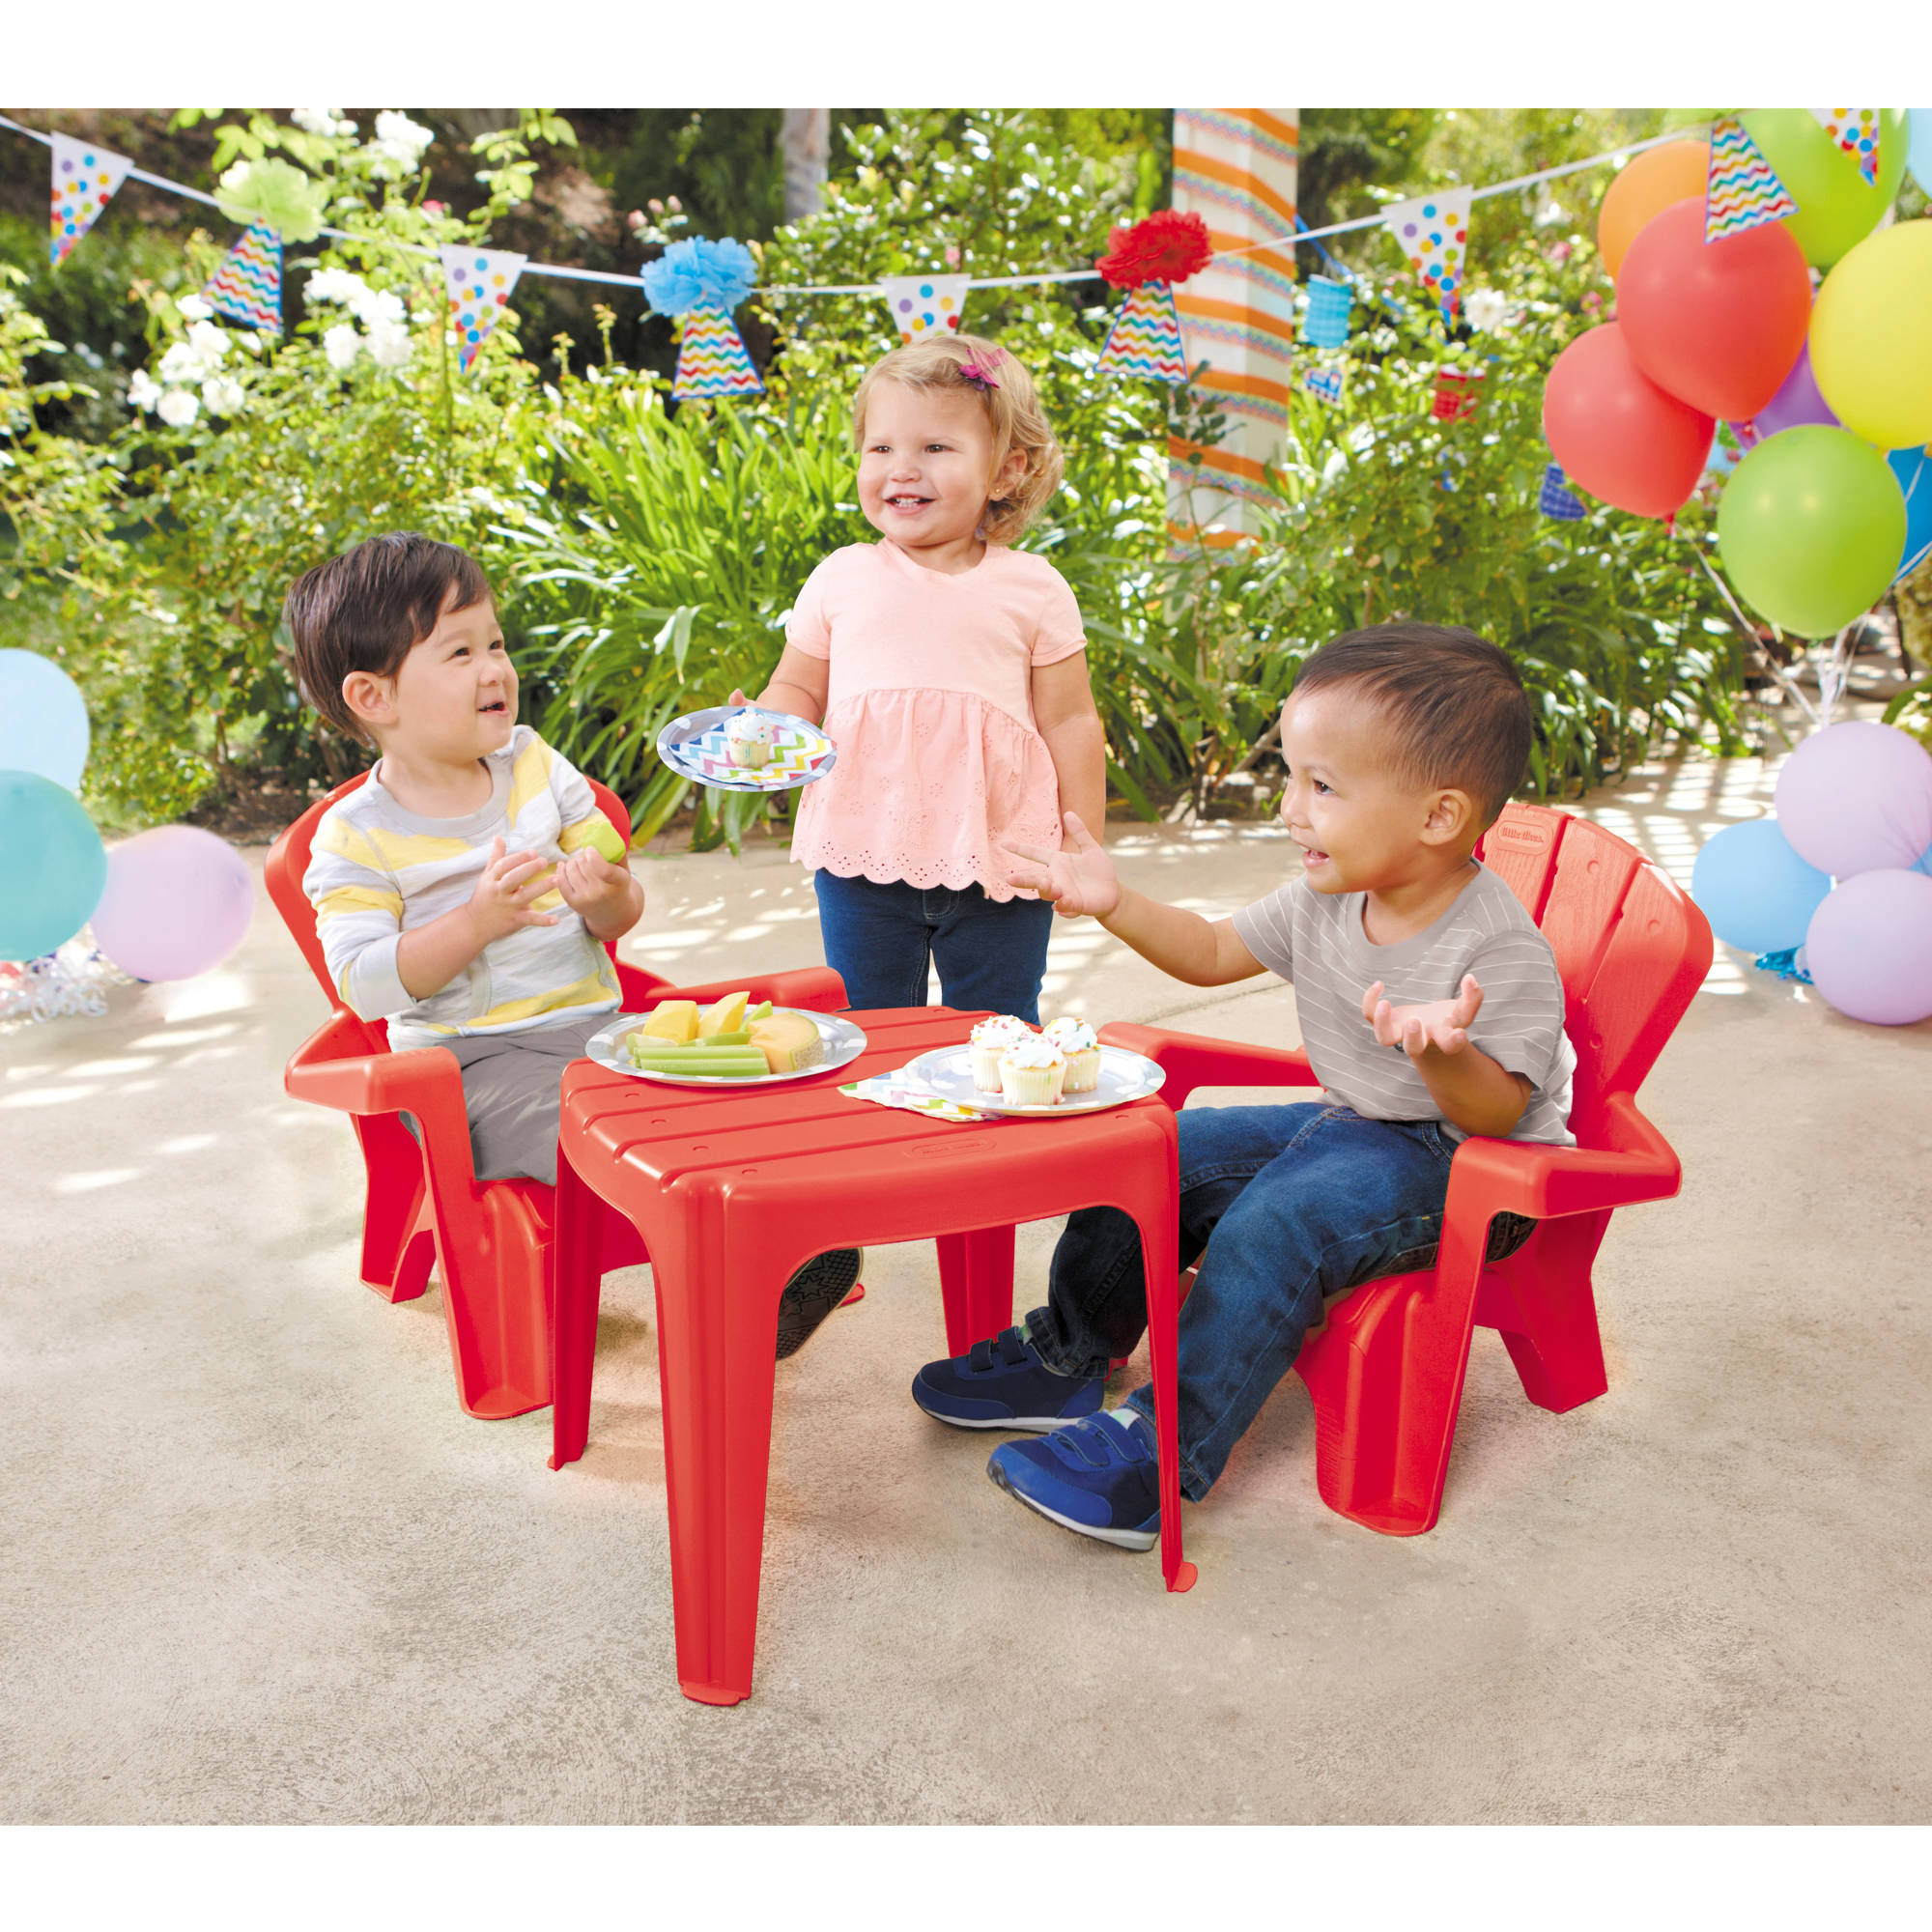 Toddler Table And Chairs Plastic Table And Chair Set Kids Indoor Outdoor Toy Garden Home